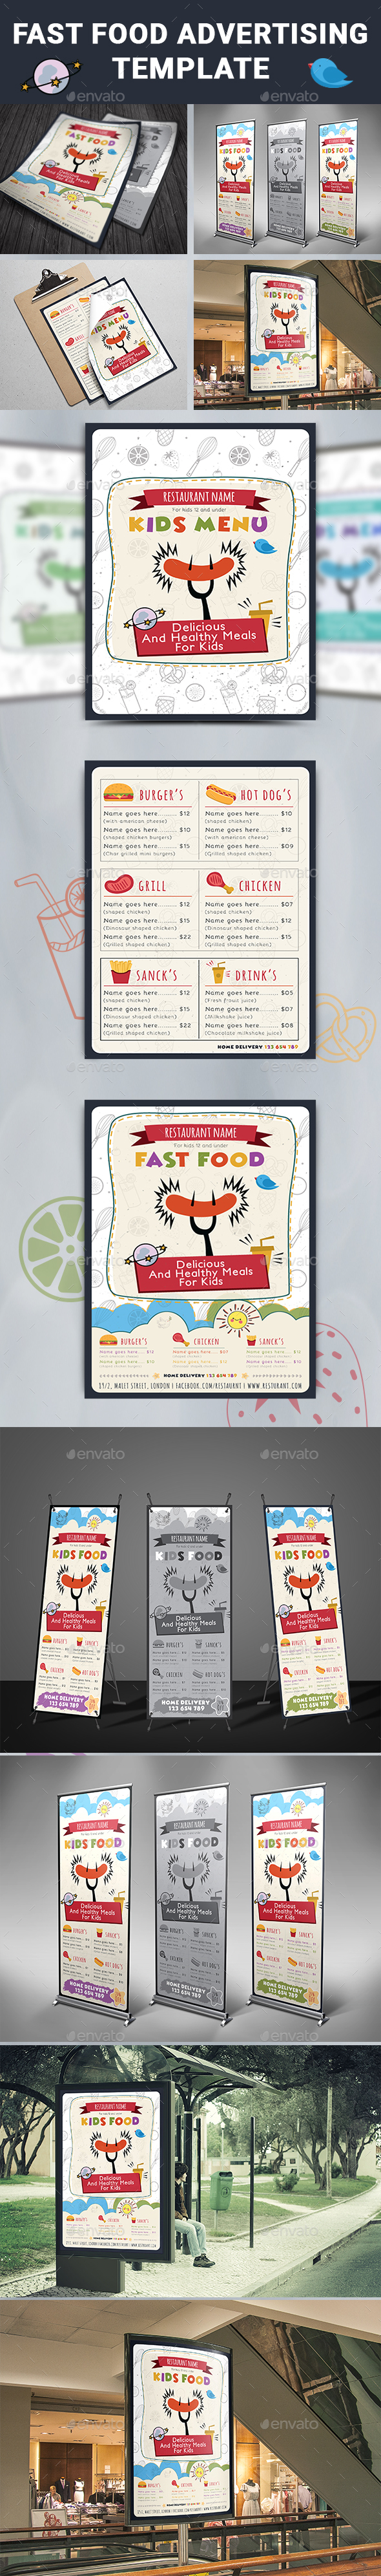 GraphicRiver Fast Food Advertising Template 20515900